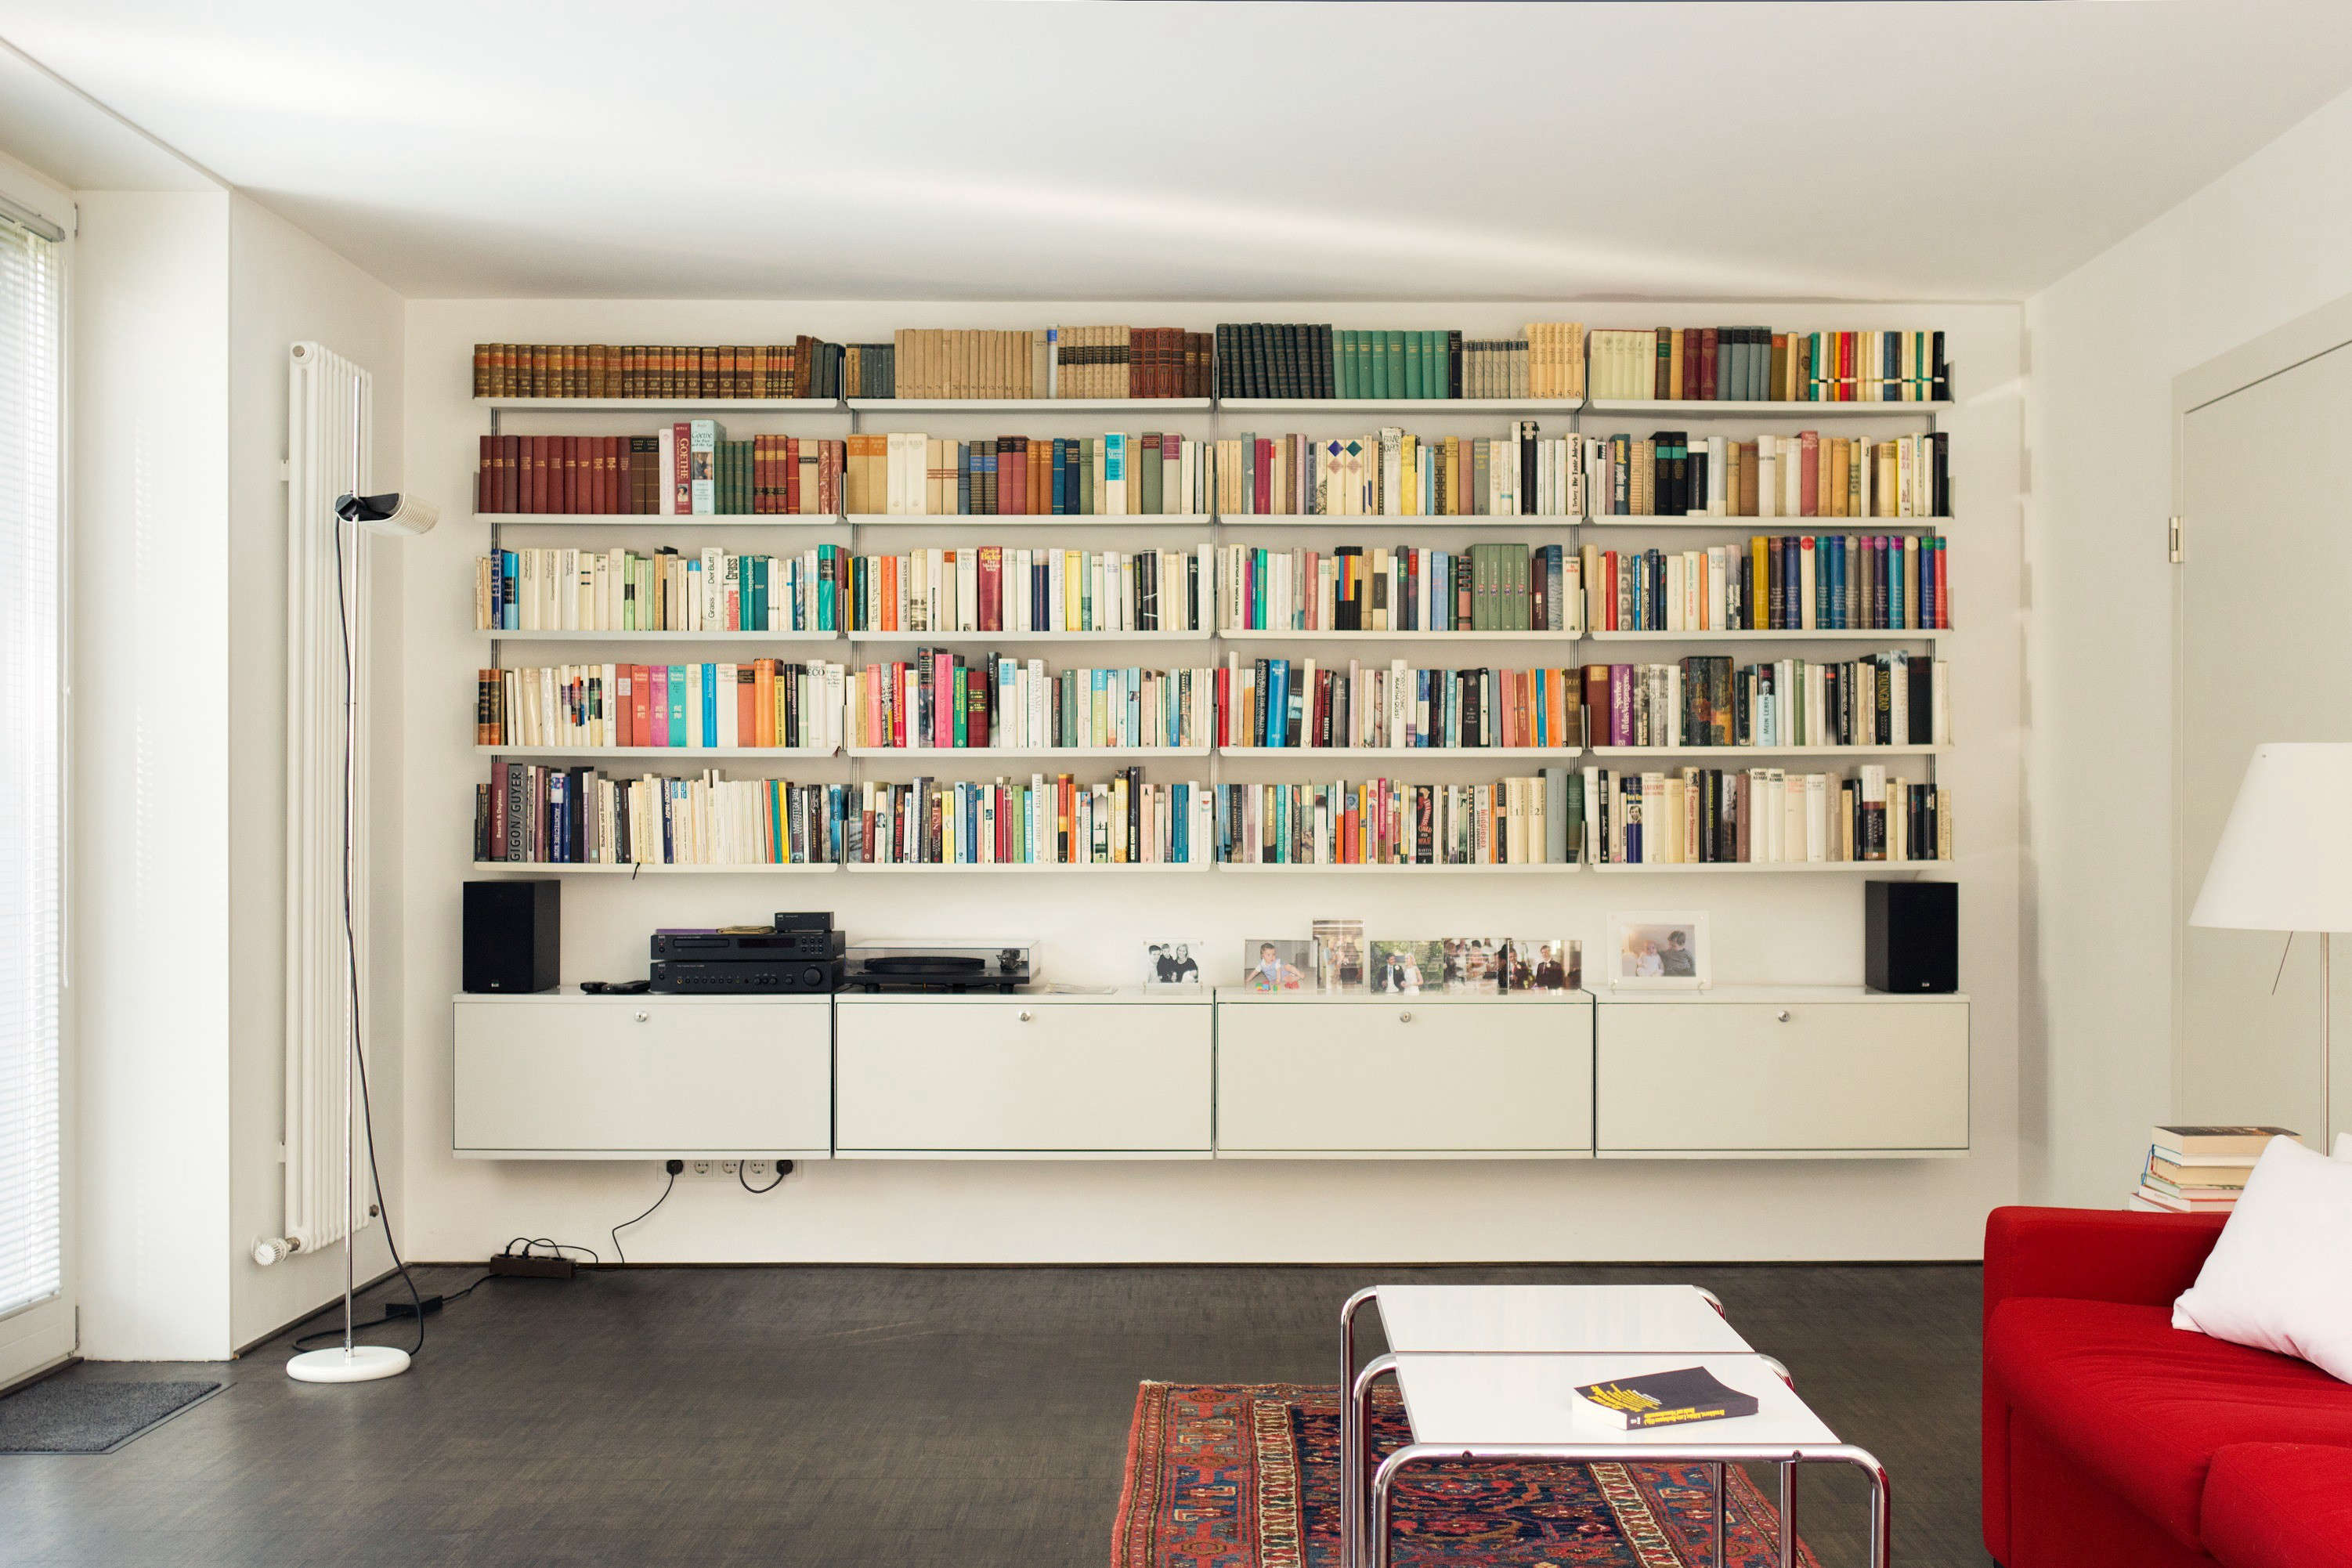 606-Universal-Shelving-System-designed-by-Dieter-Rams-©Vitsoe-Remodelista-02